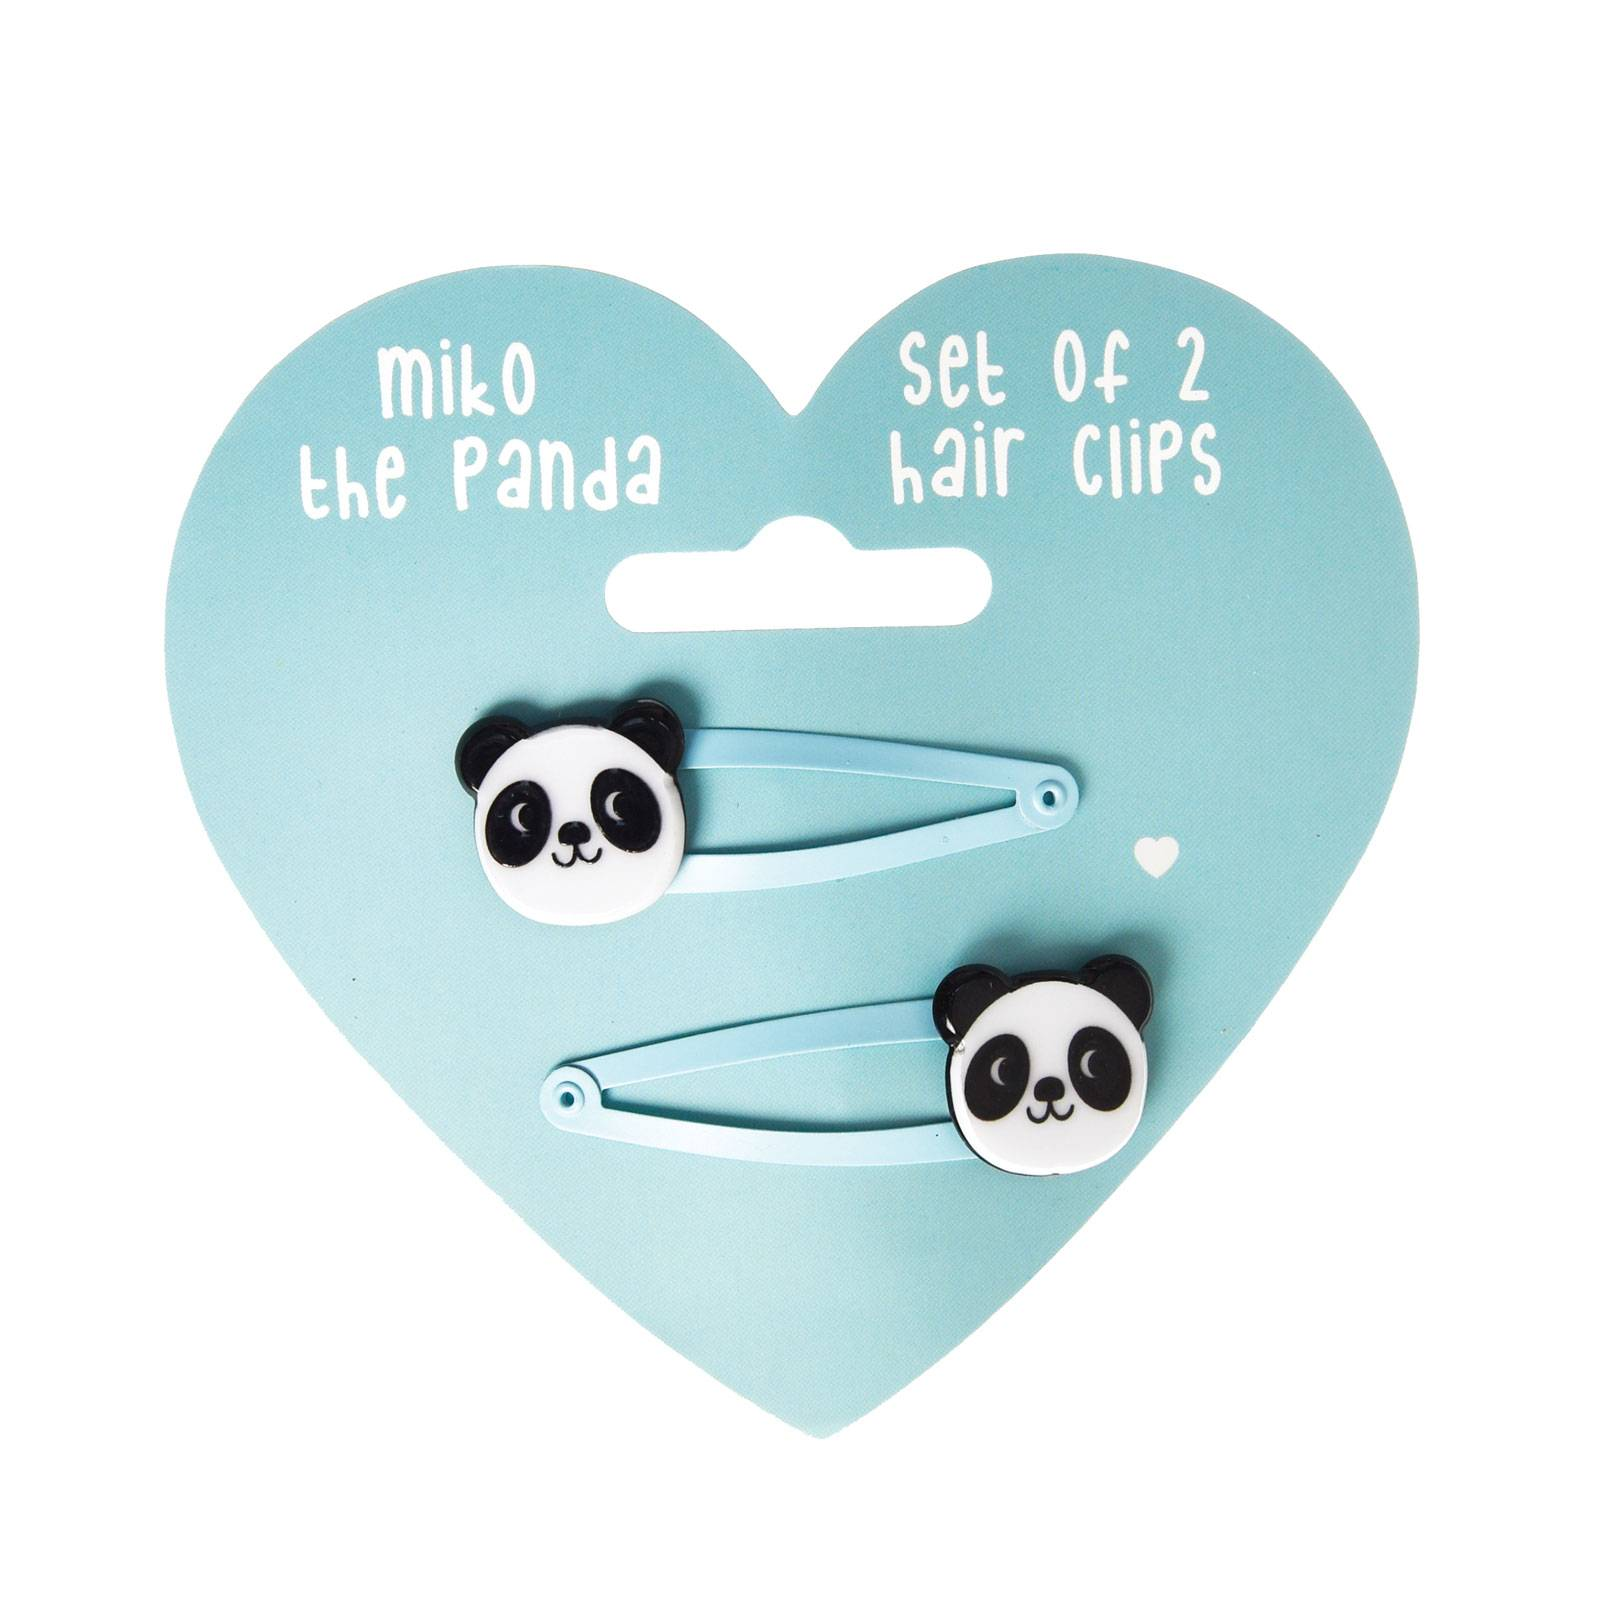 Set Of 2 Panda Hairclips